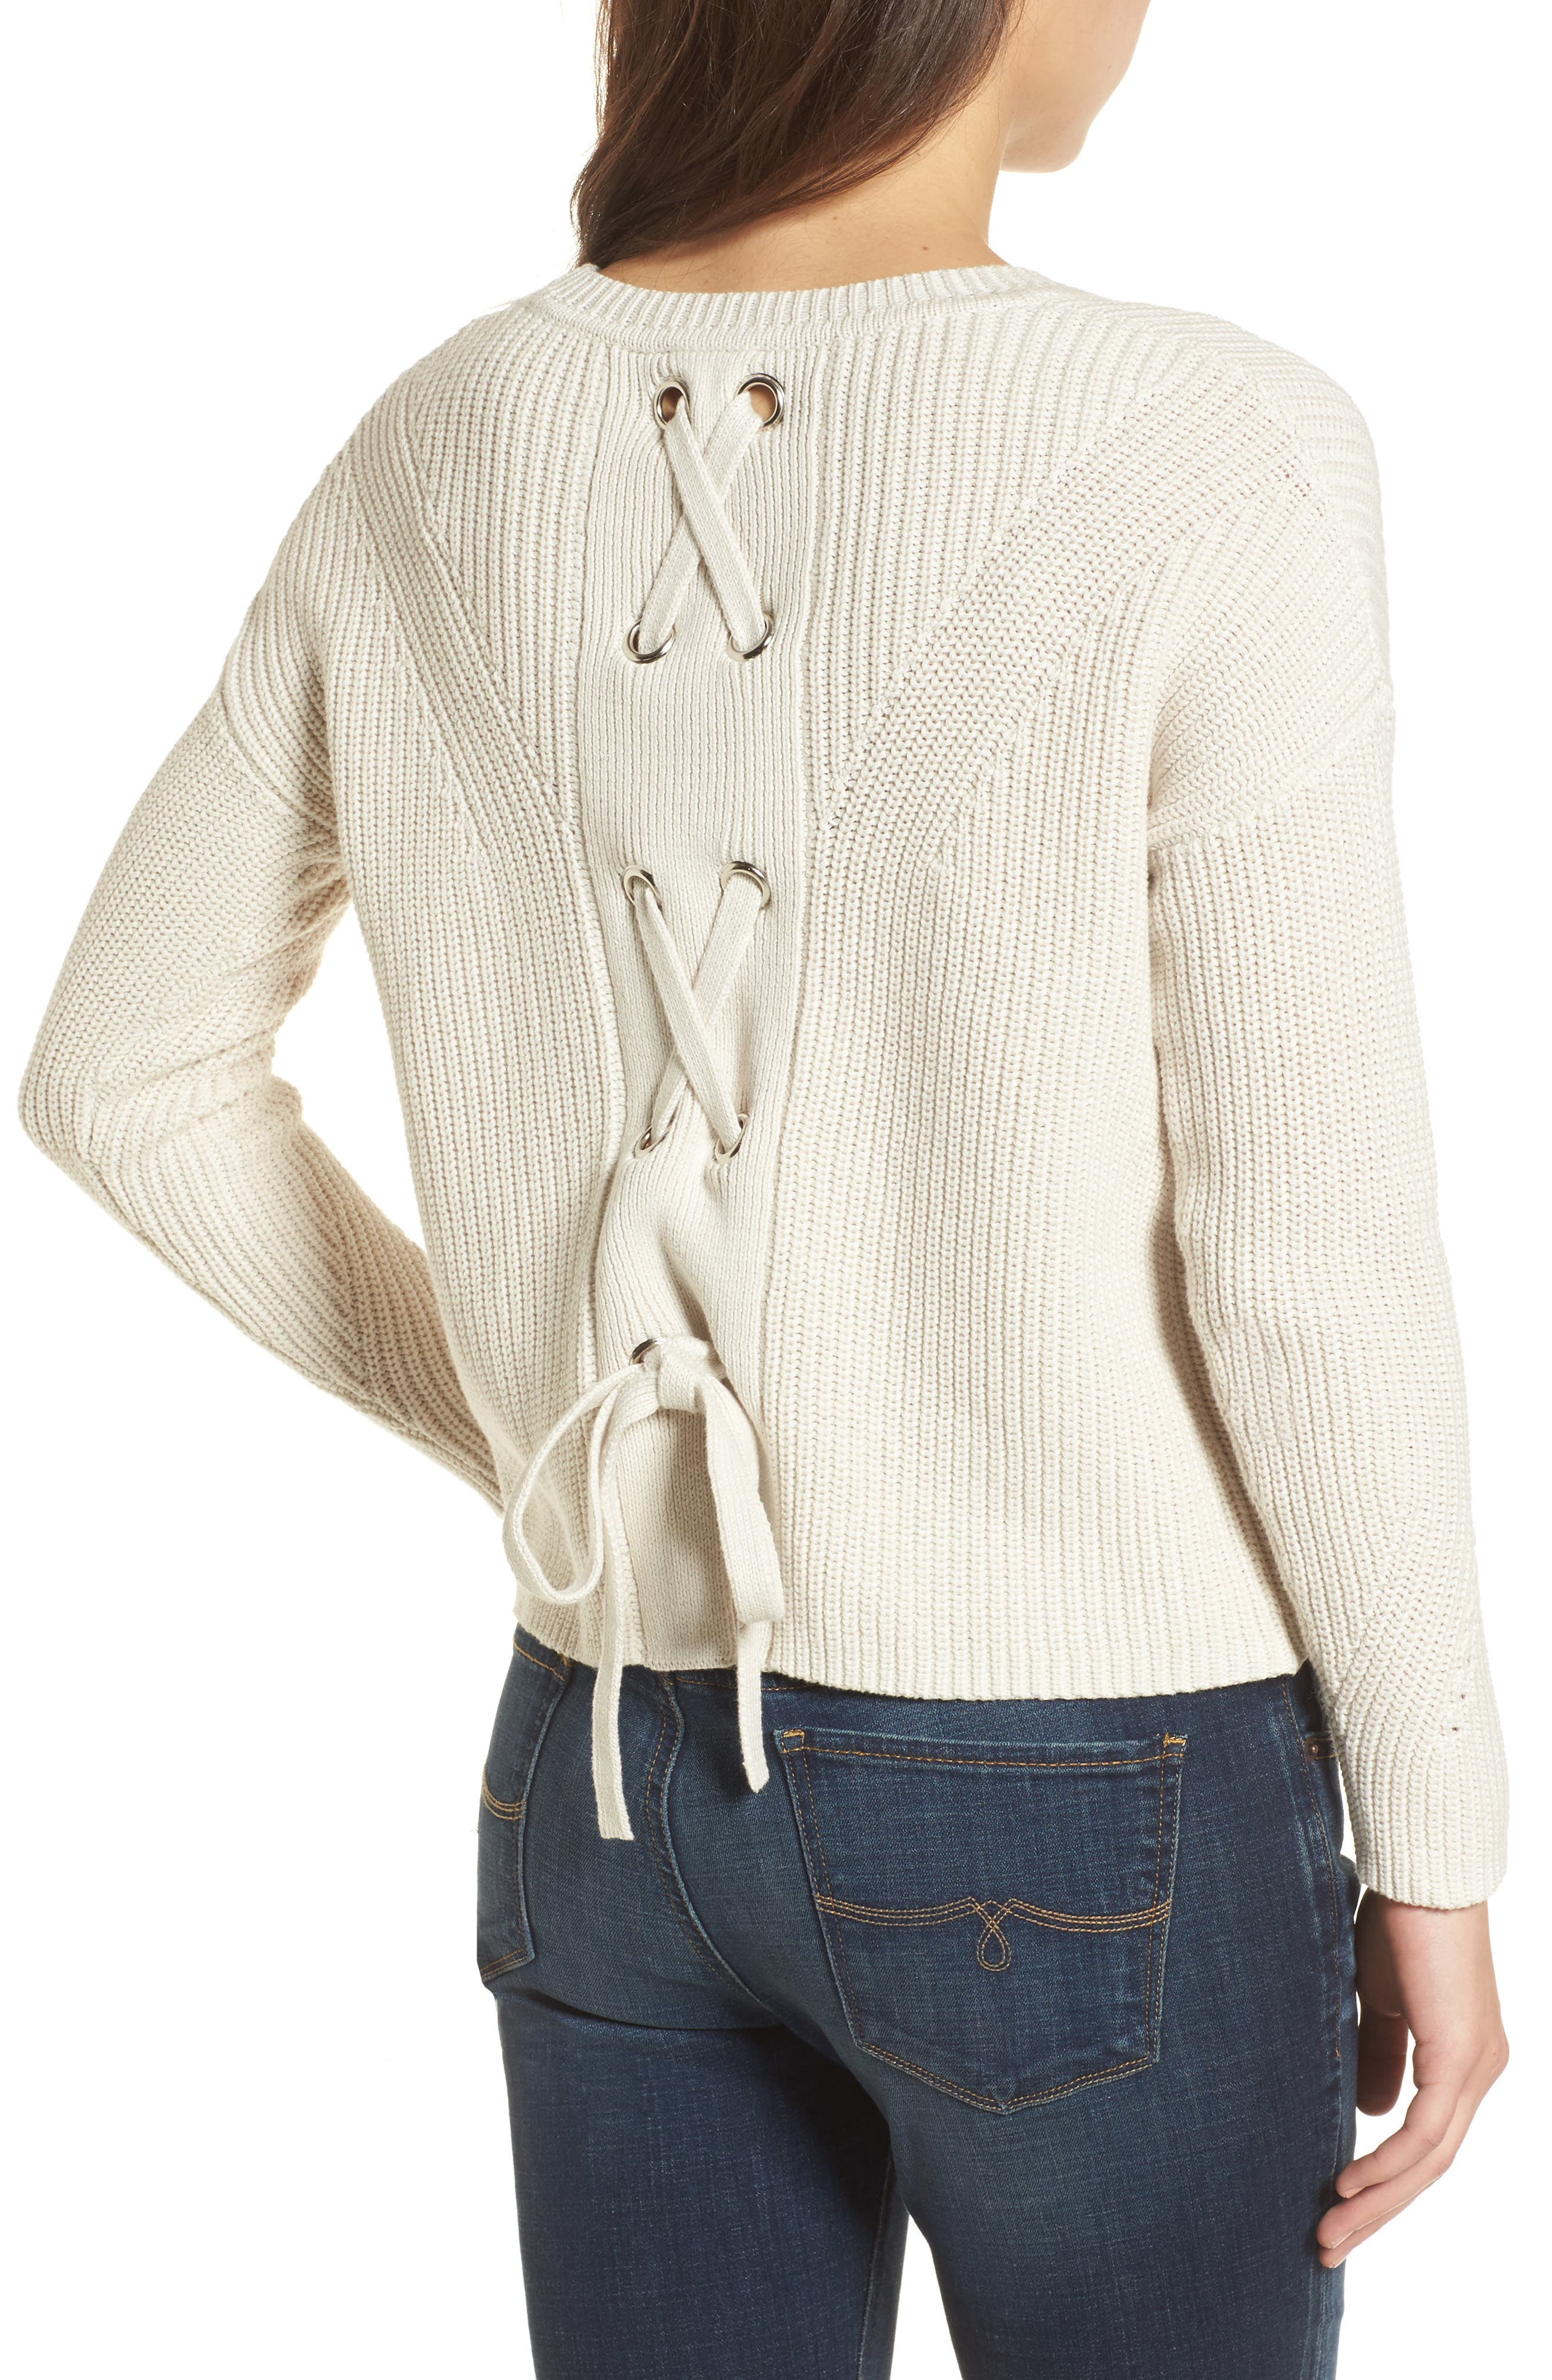 Lace-Up Back Sweater,                             Alternate thumbnail 2, color,                             250